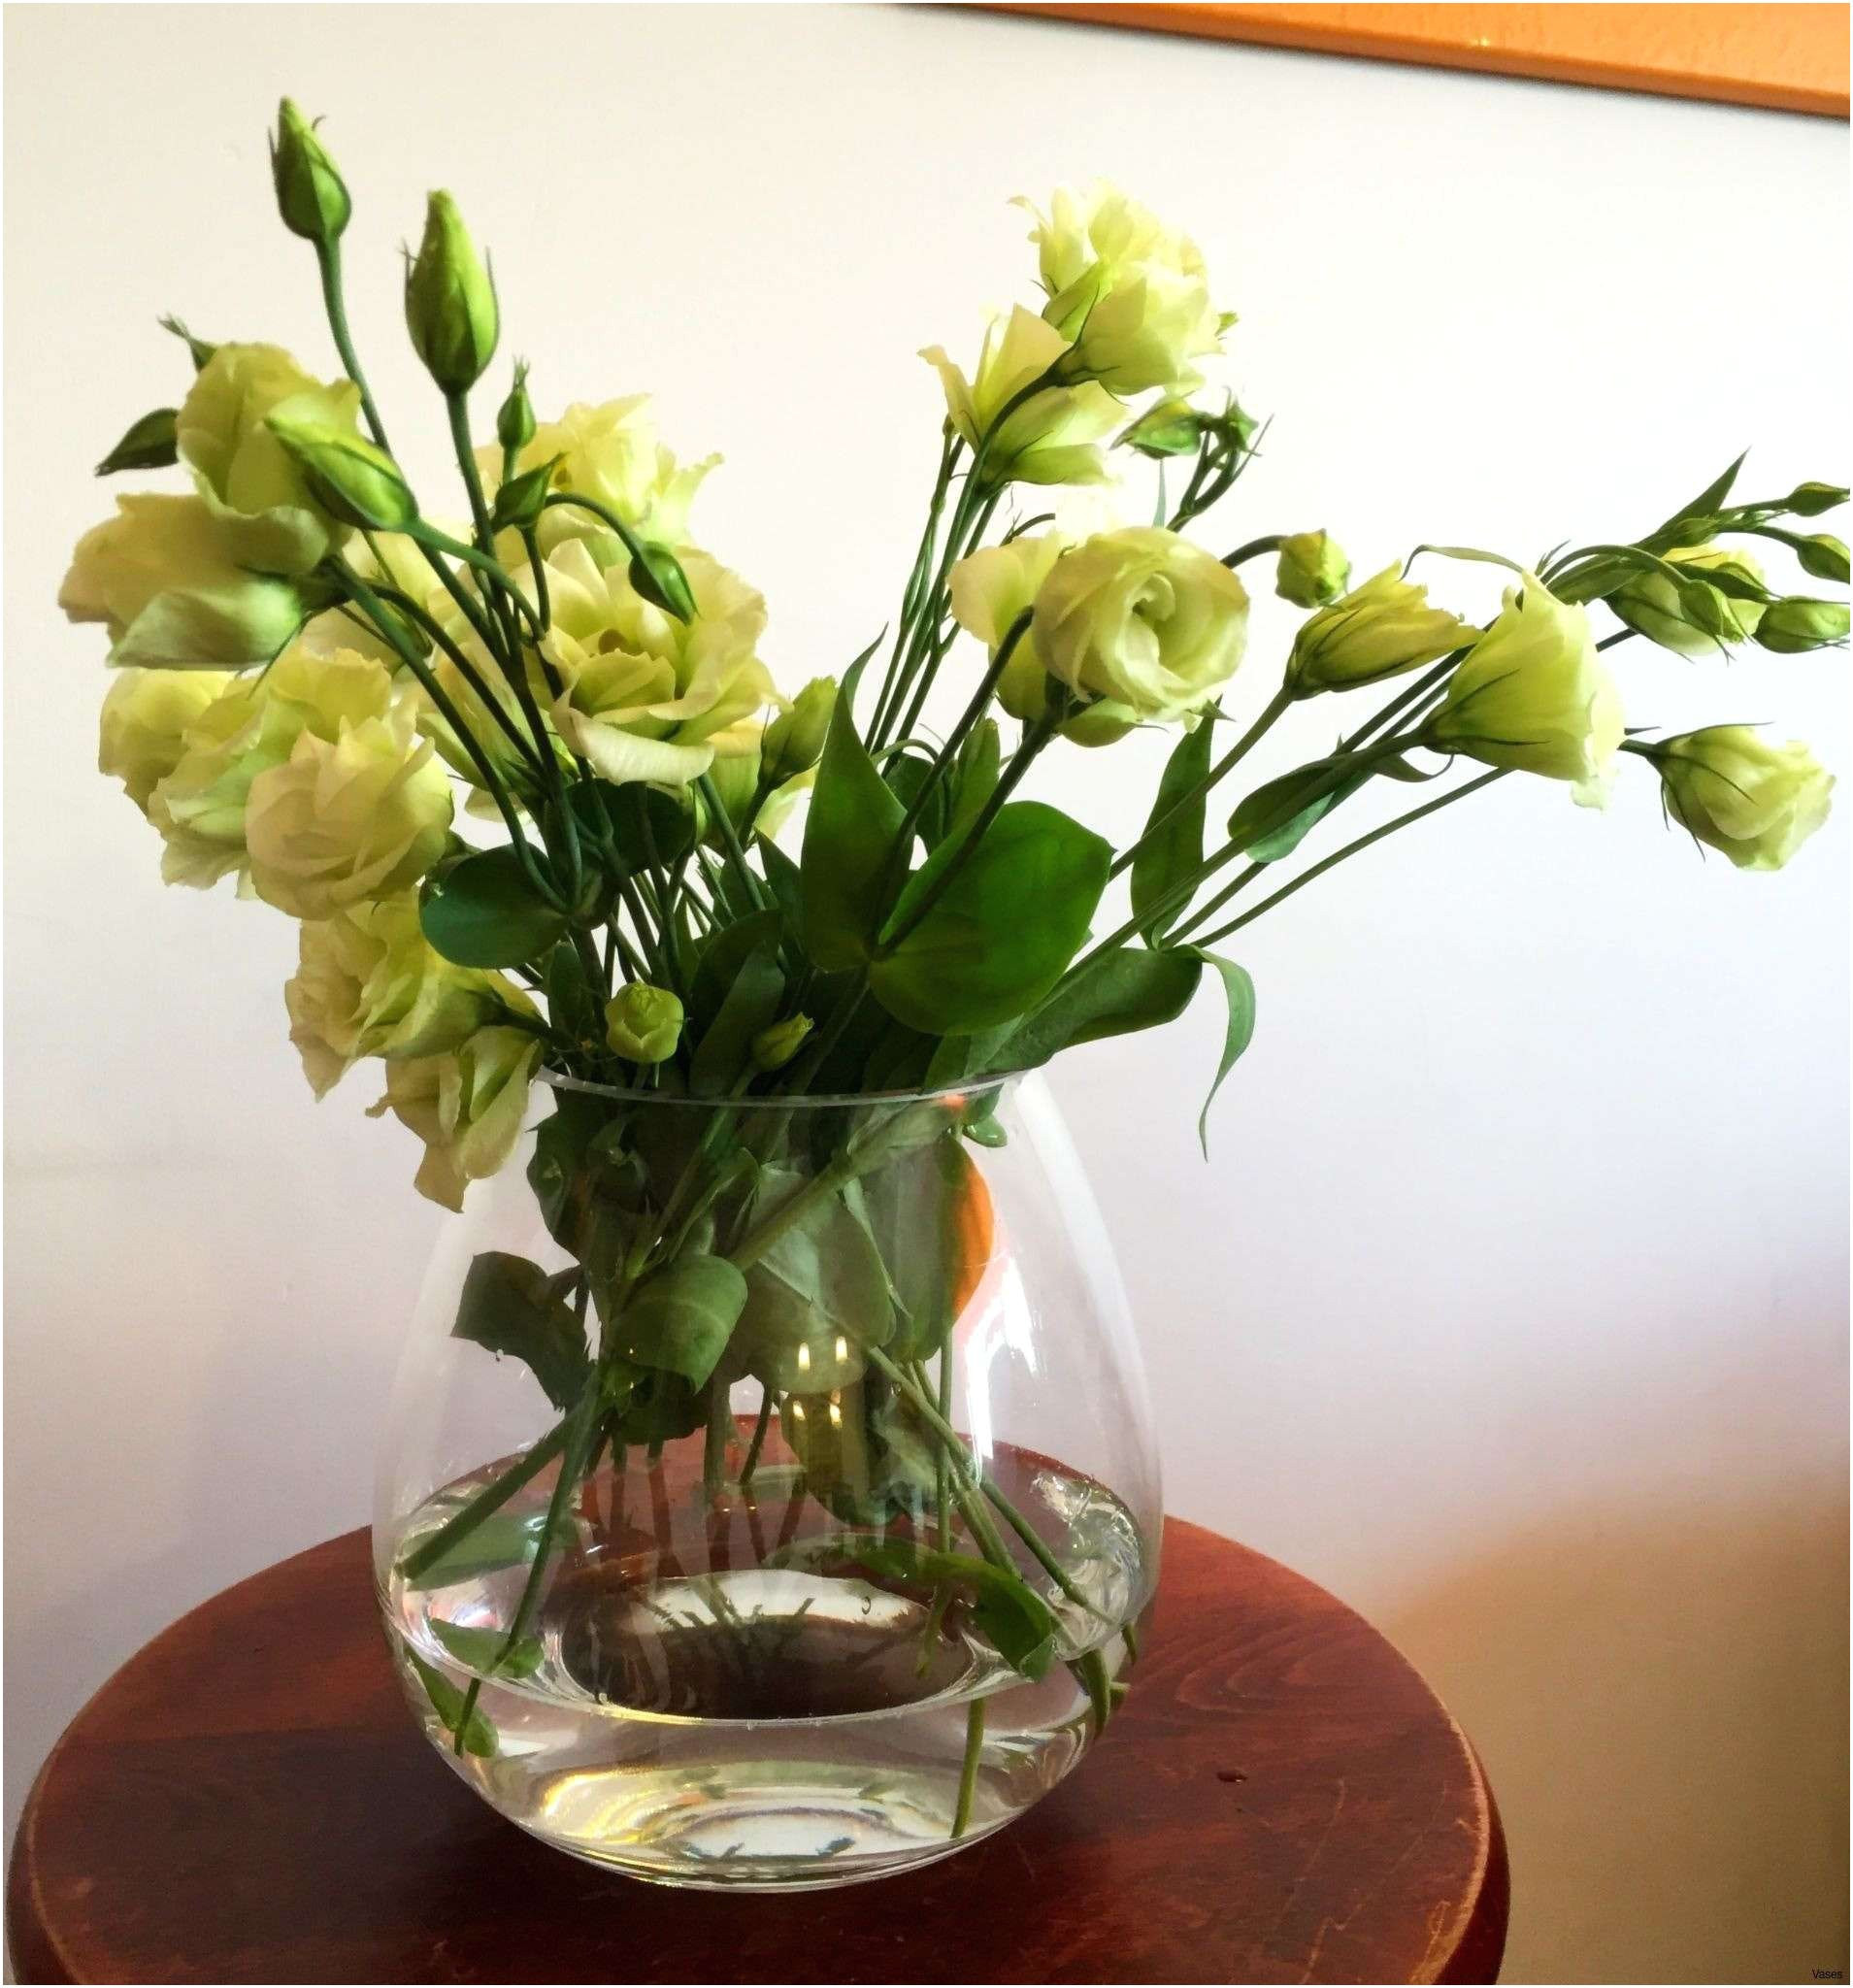 ceramic vases in bulk of tall green glass vase image tiger height awful flower vase table 04h within tall green glass vase image tiger height awful flower vase table 04h vases tablei 0d clipart